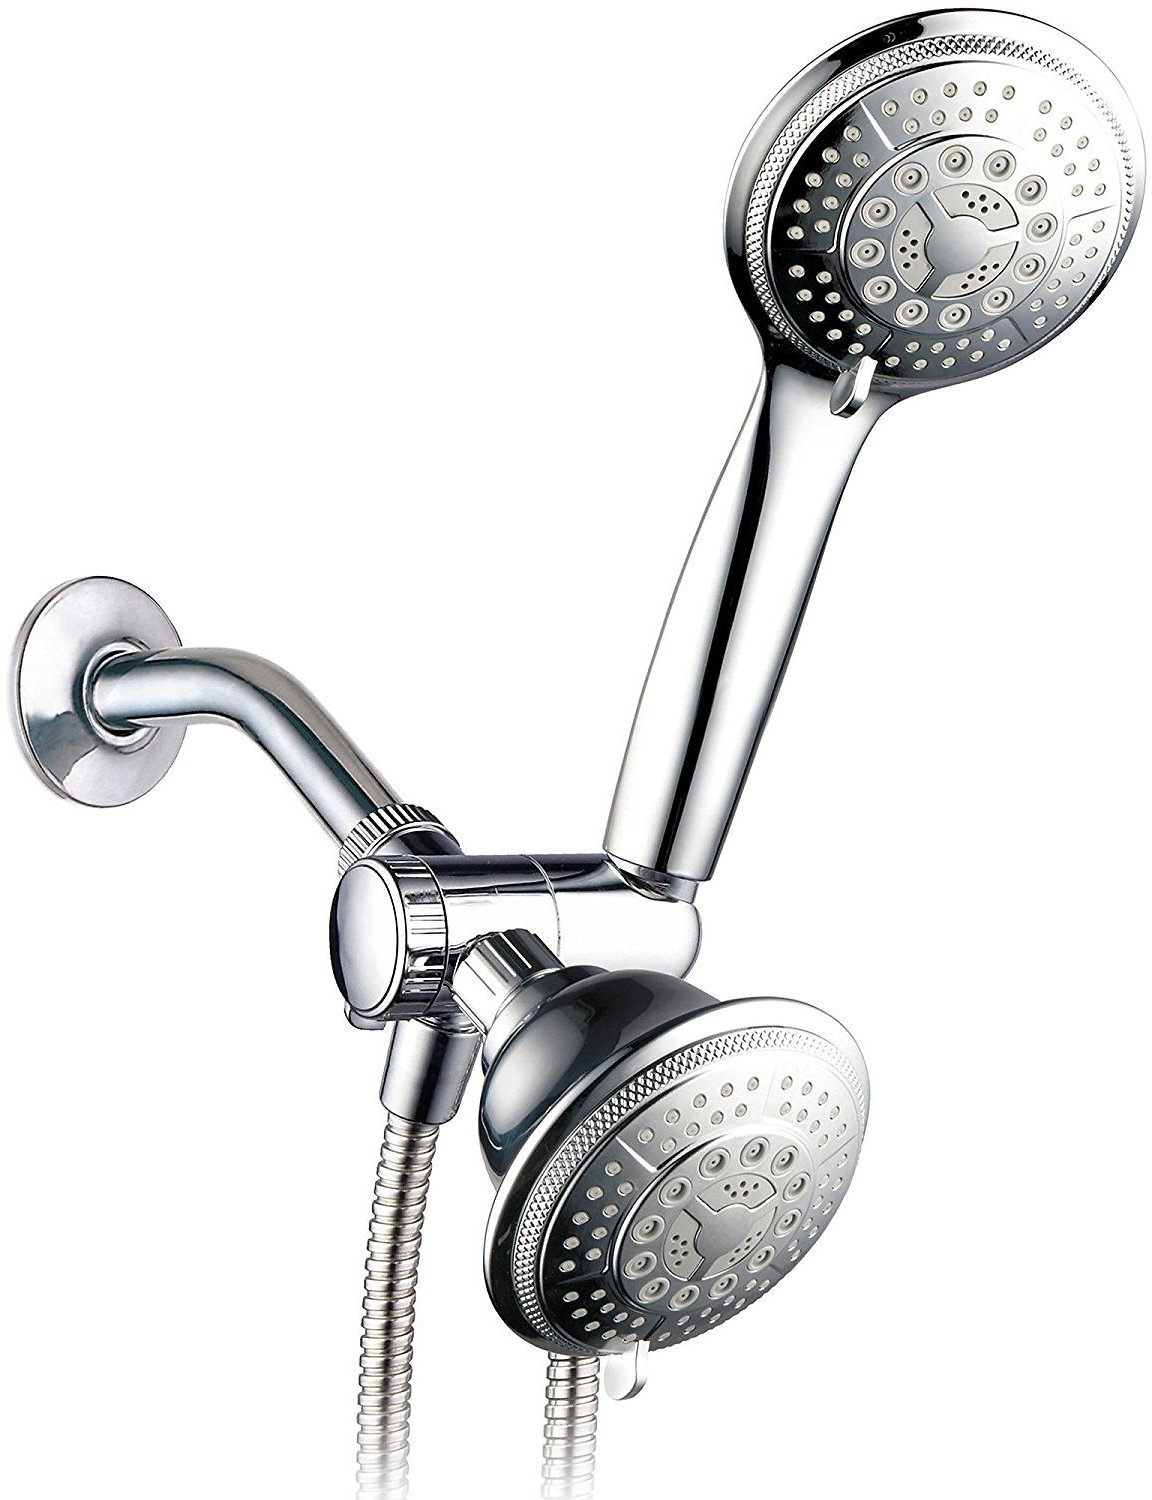 Hydroluxe 3-Way 2-In-One Shower Head/Handheld Combo